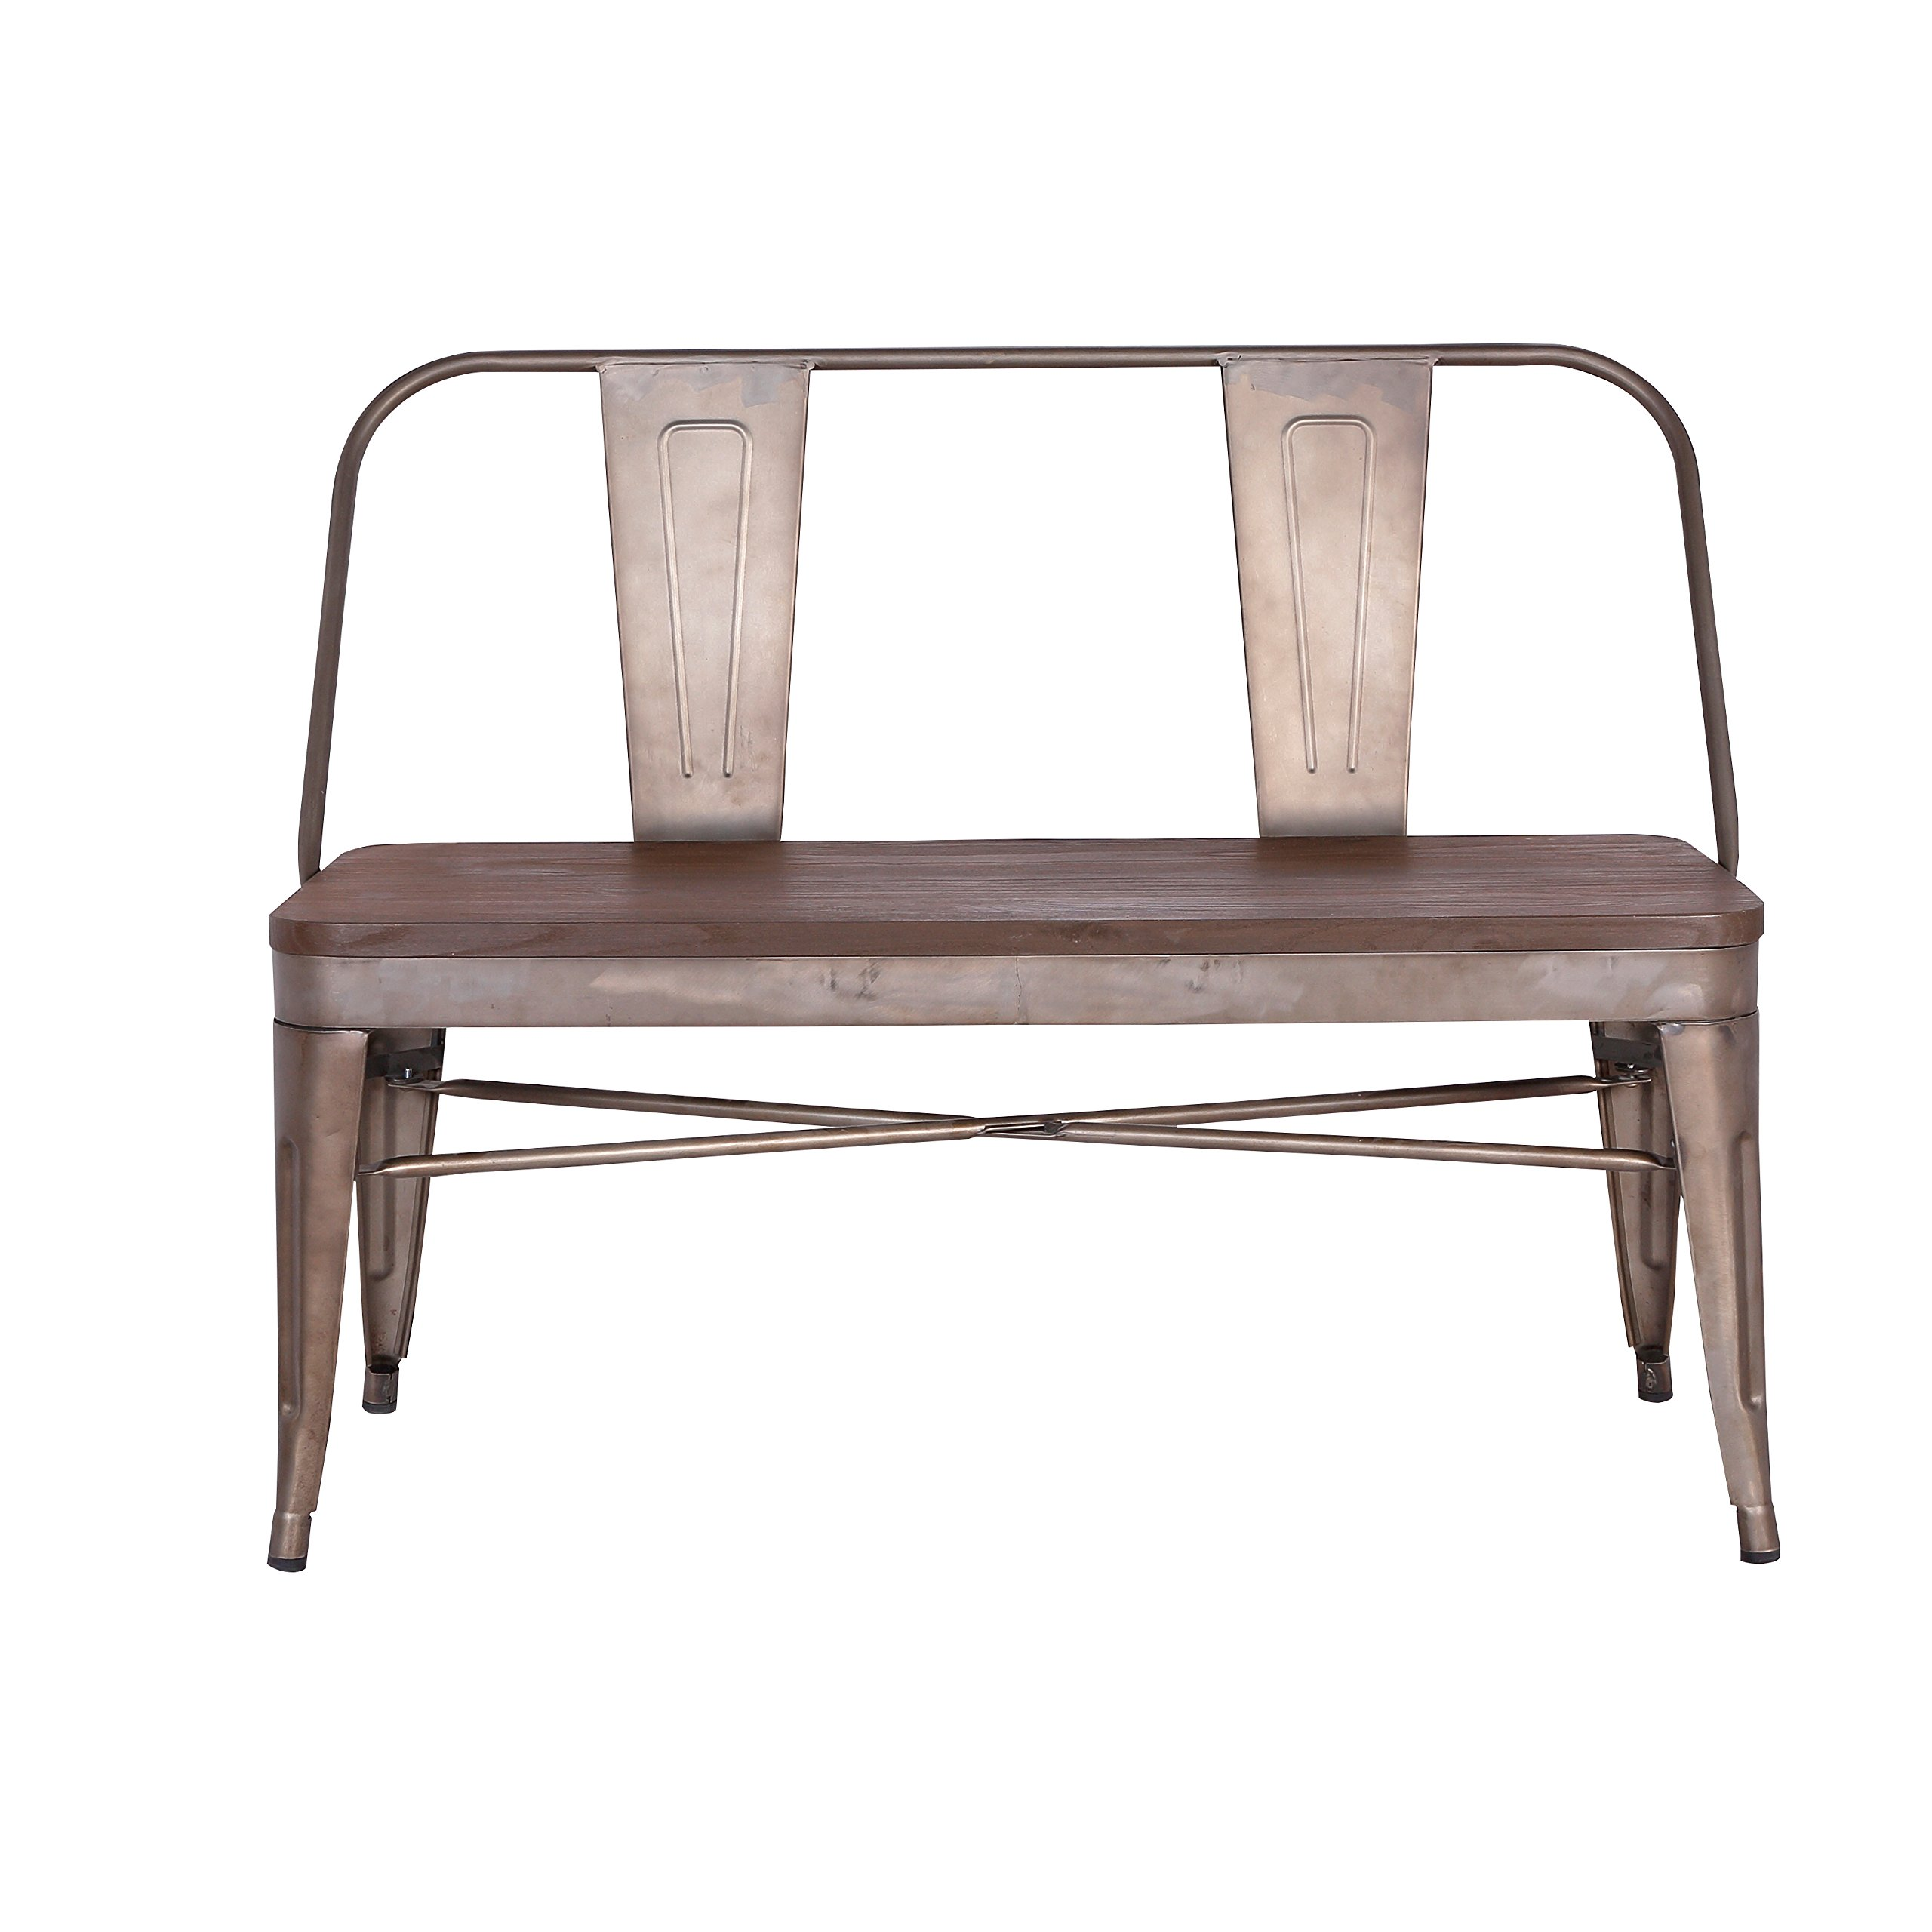 Poly and Bark EM-311-BRZ Trattoria Bench with Elm Wood Seat by POLY & BARK (Image #2)